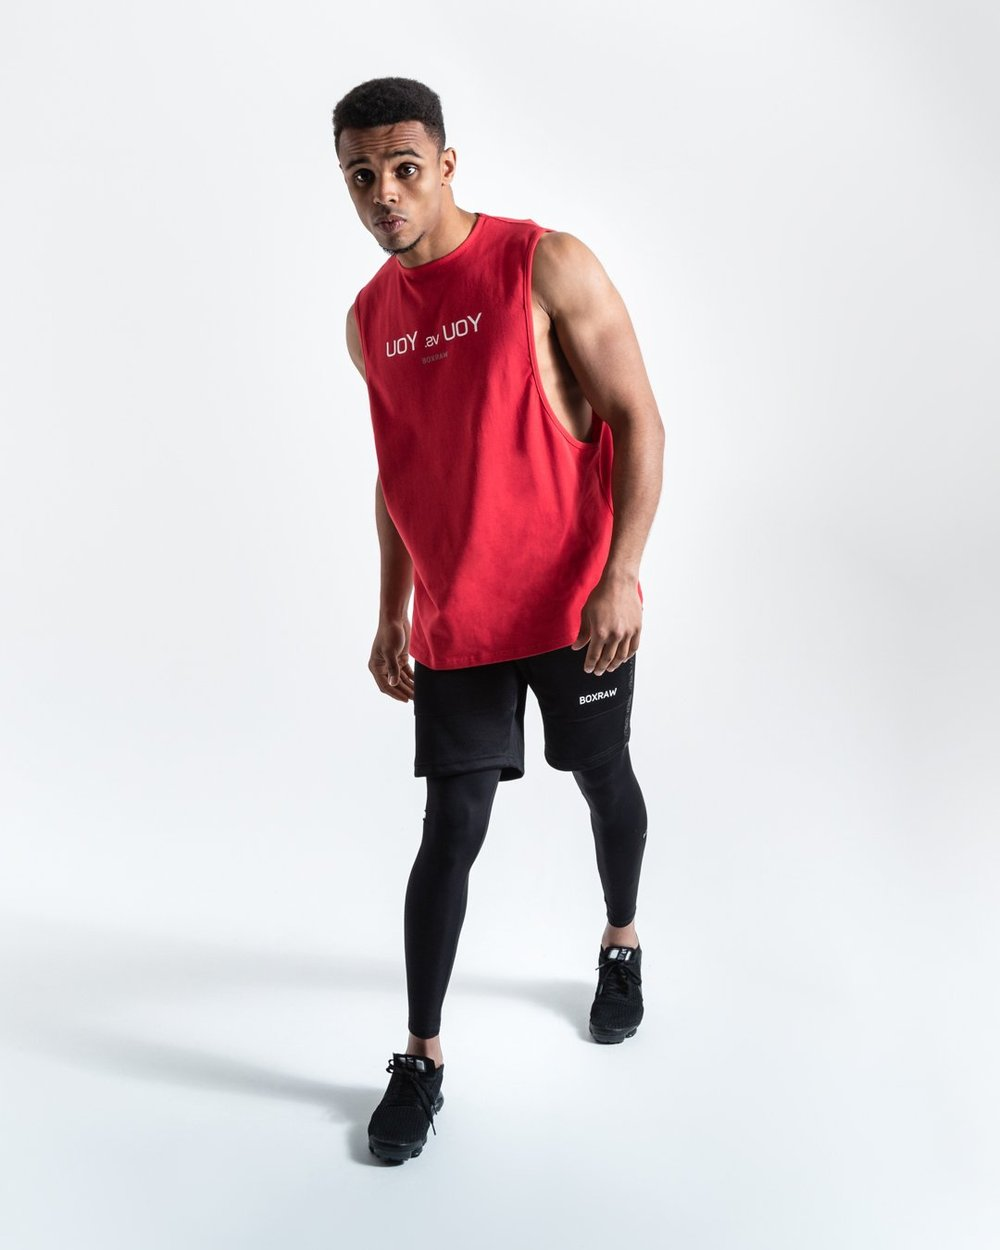 YOU VS. YOU MUSCLE TANK - RED - Pandemic Fight Gear Inc.